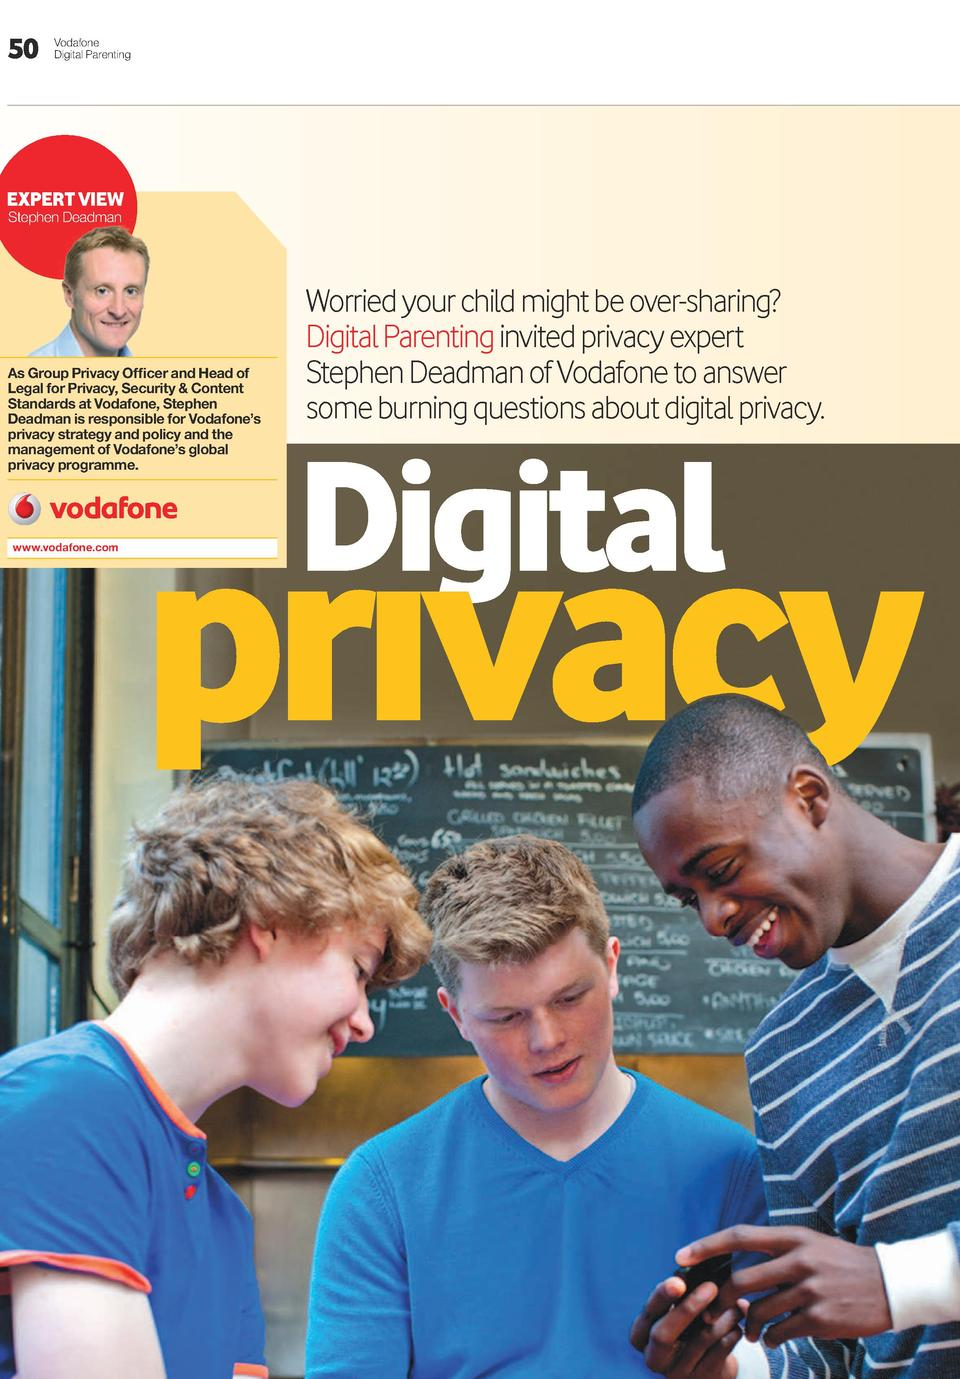 50  Vodafone Digital Parenting  exPeRT VIeW Stephen Deadman  As Group Privacy Officer and Head of Legal for Privacy, Secur...